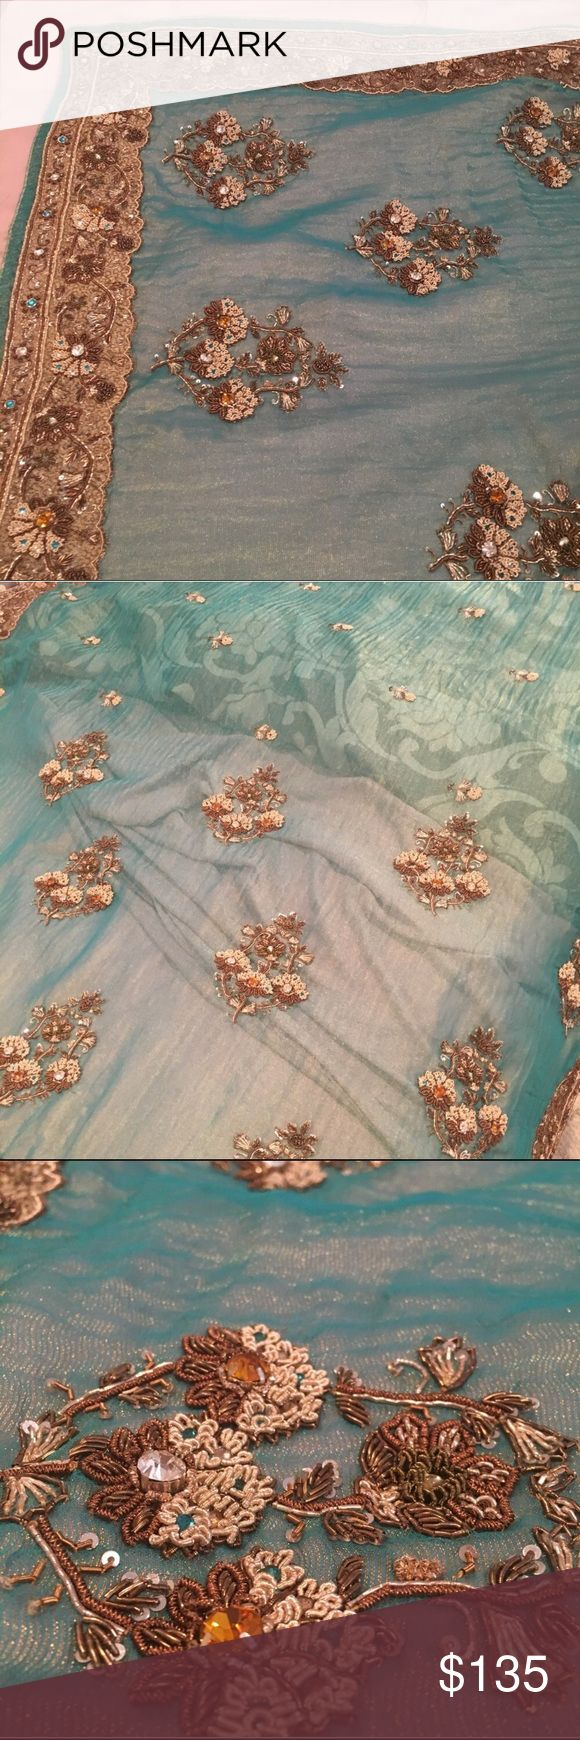 Bollywood Desi Saree Sari Bronze Teal Seagreen Iridescent and gorgeous! Worn only twice. Heavy work excellent quality. Some wear on edges - not easily seen. Very pretty overall! Bronze thread work and metal work. Saree only no blouse. Dresses